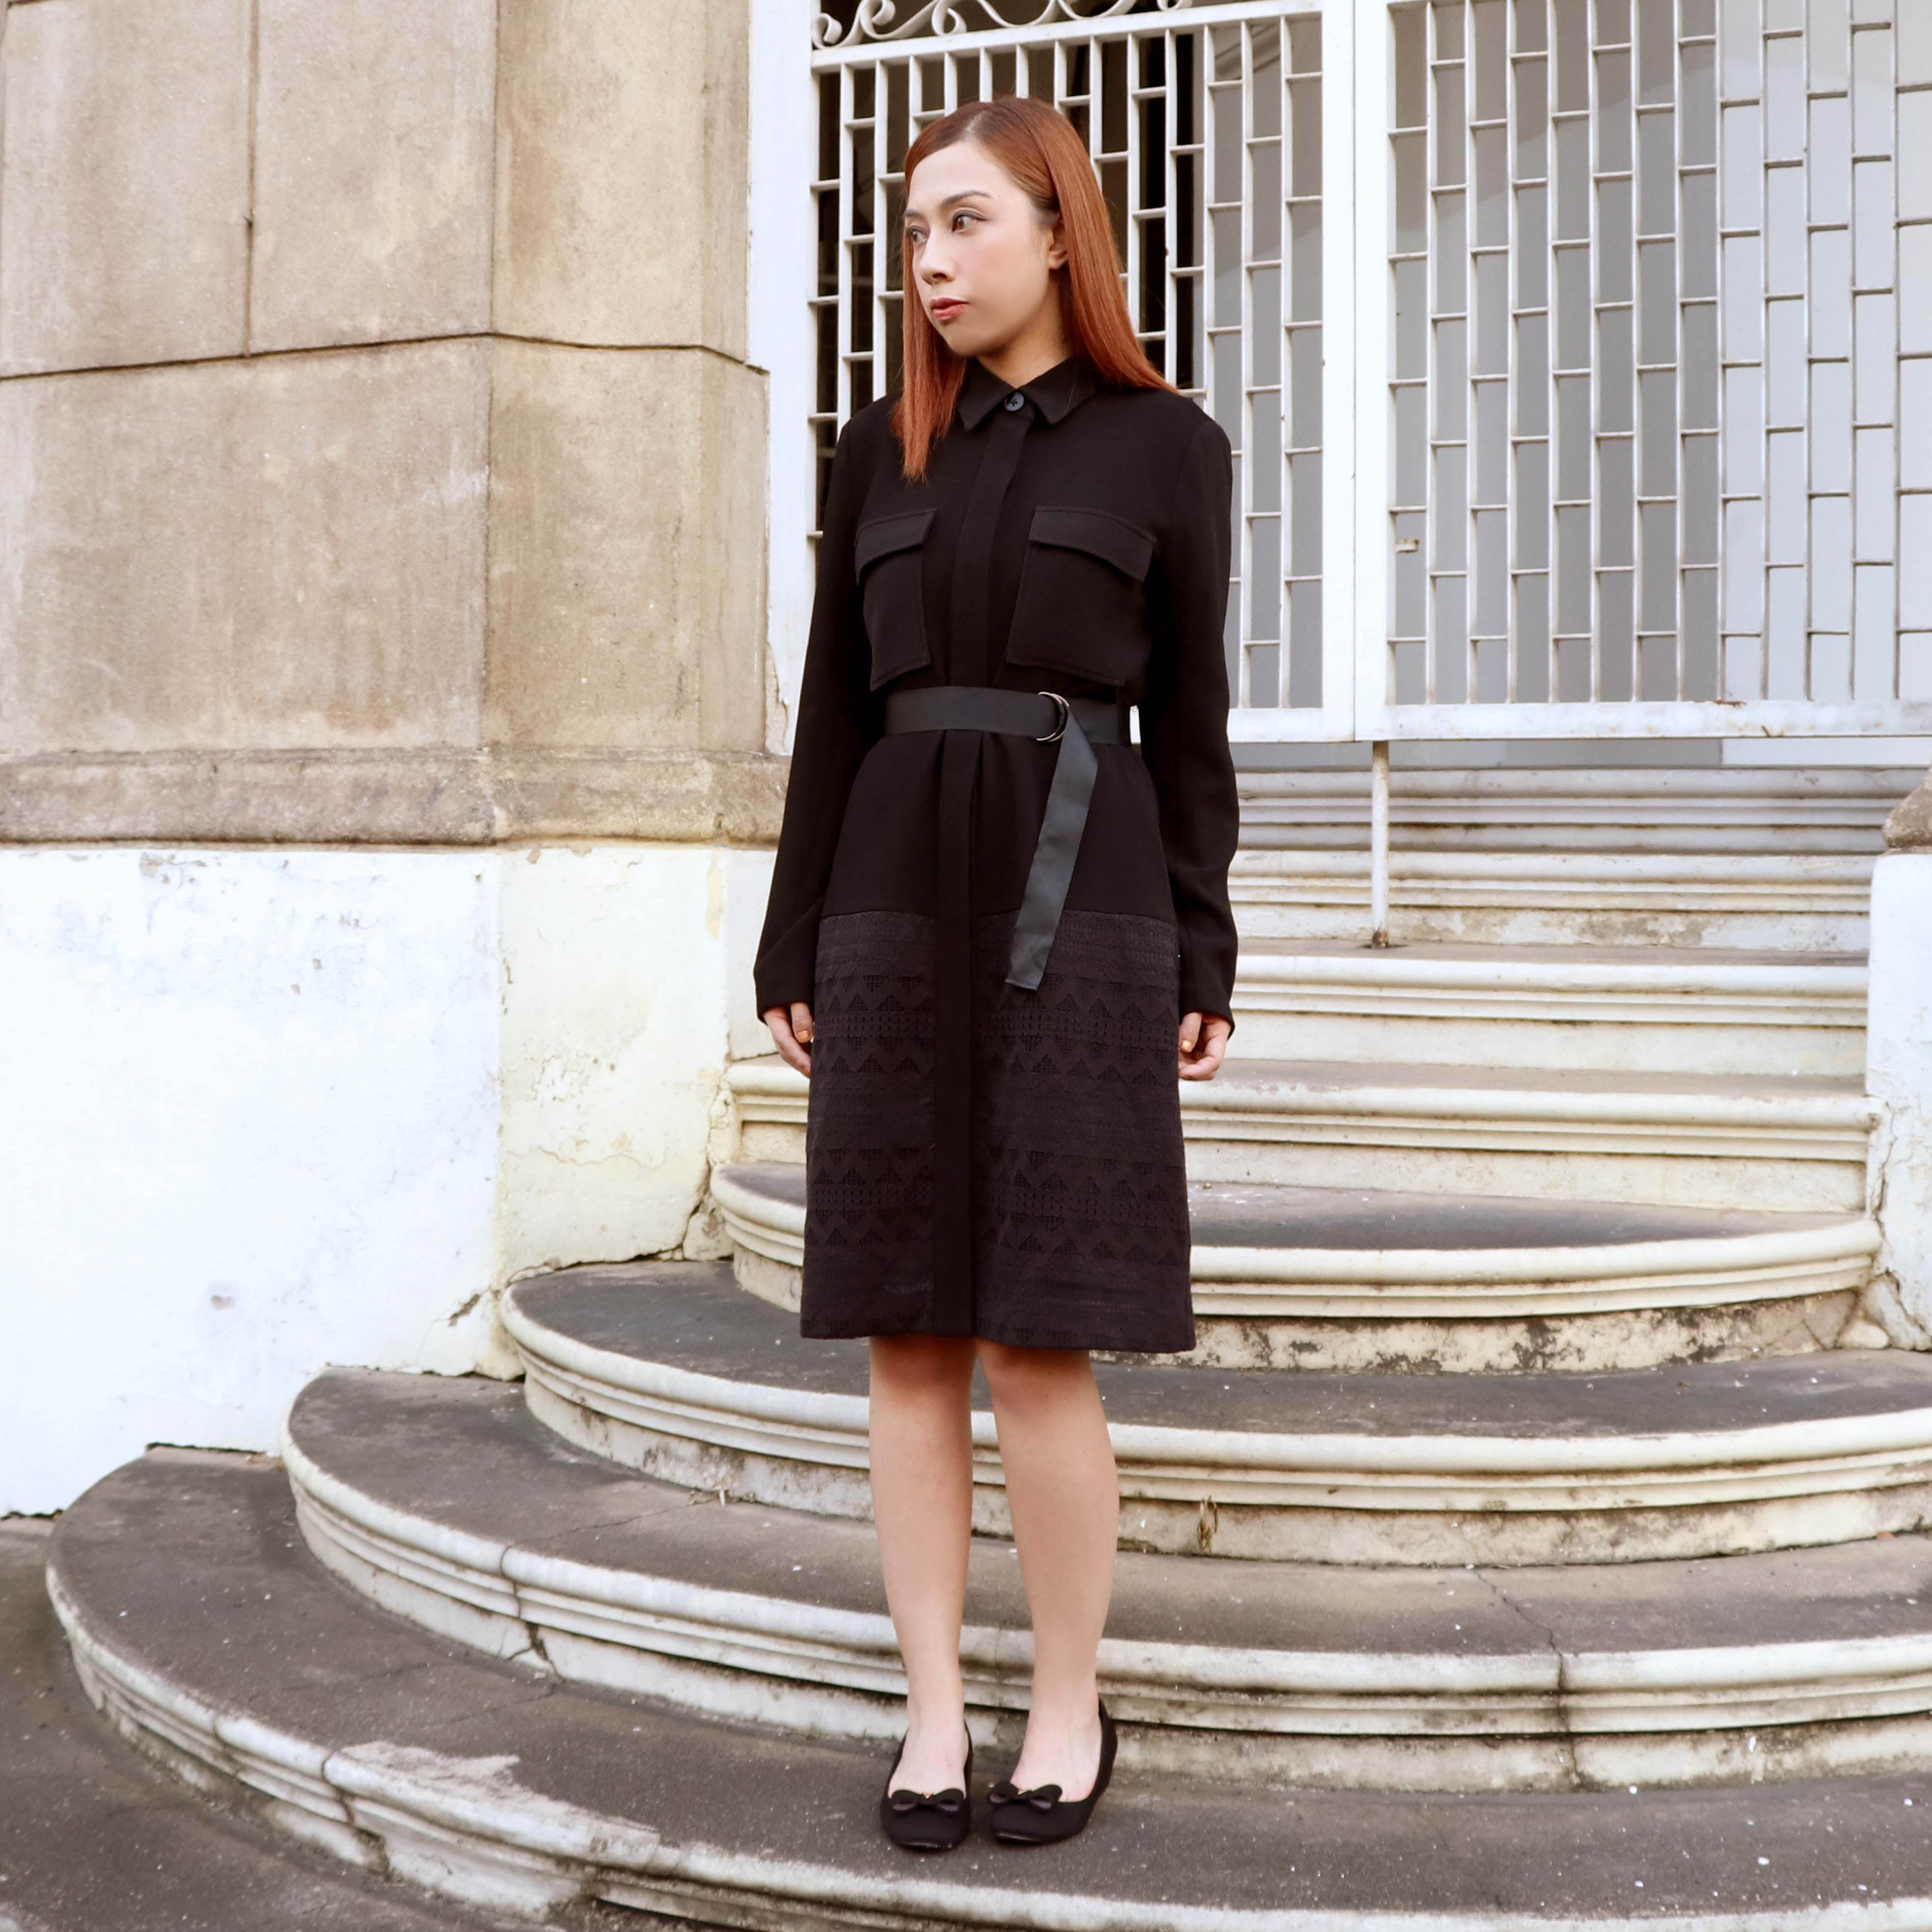 Black Coat With Lace One Piece Dress with belt